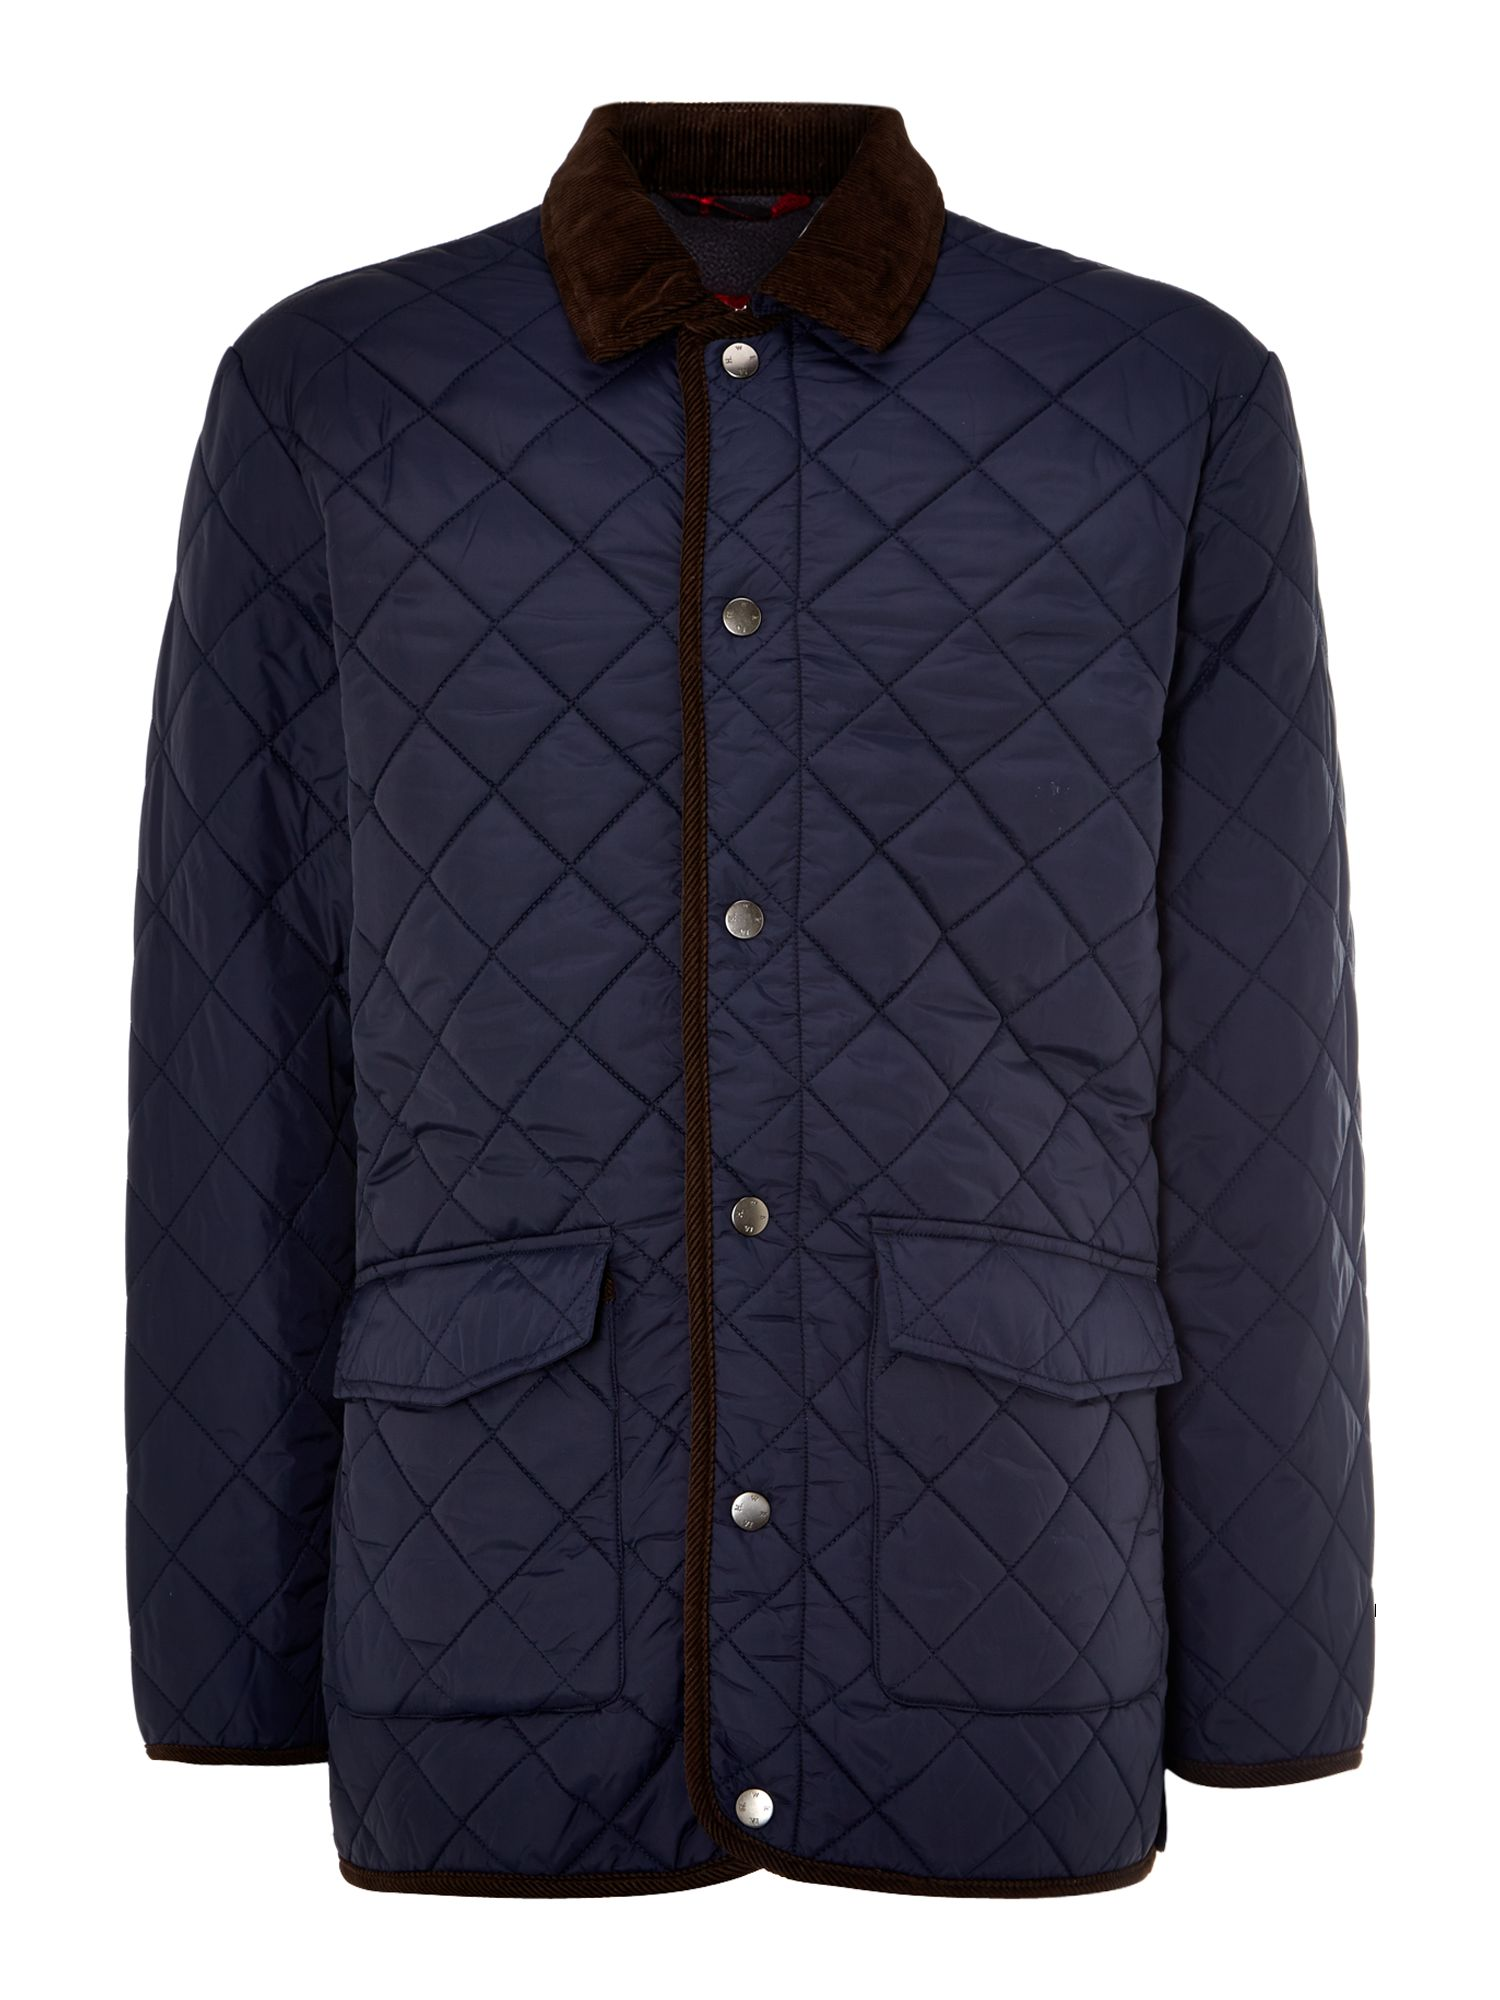 Pembroke quilted jacket